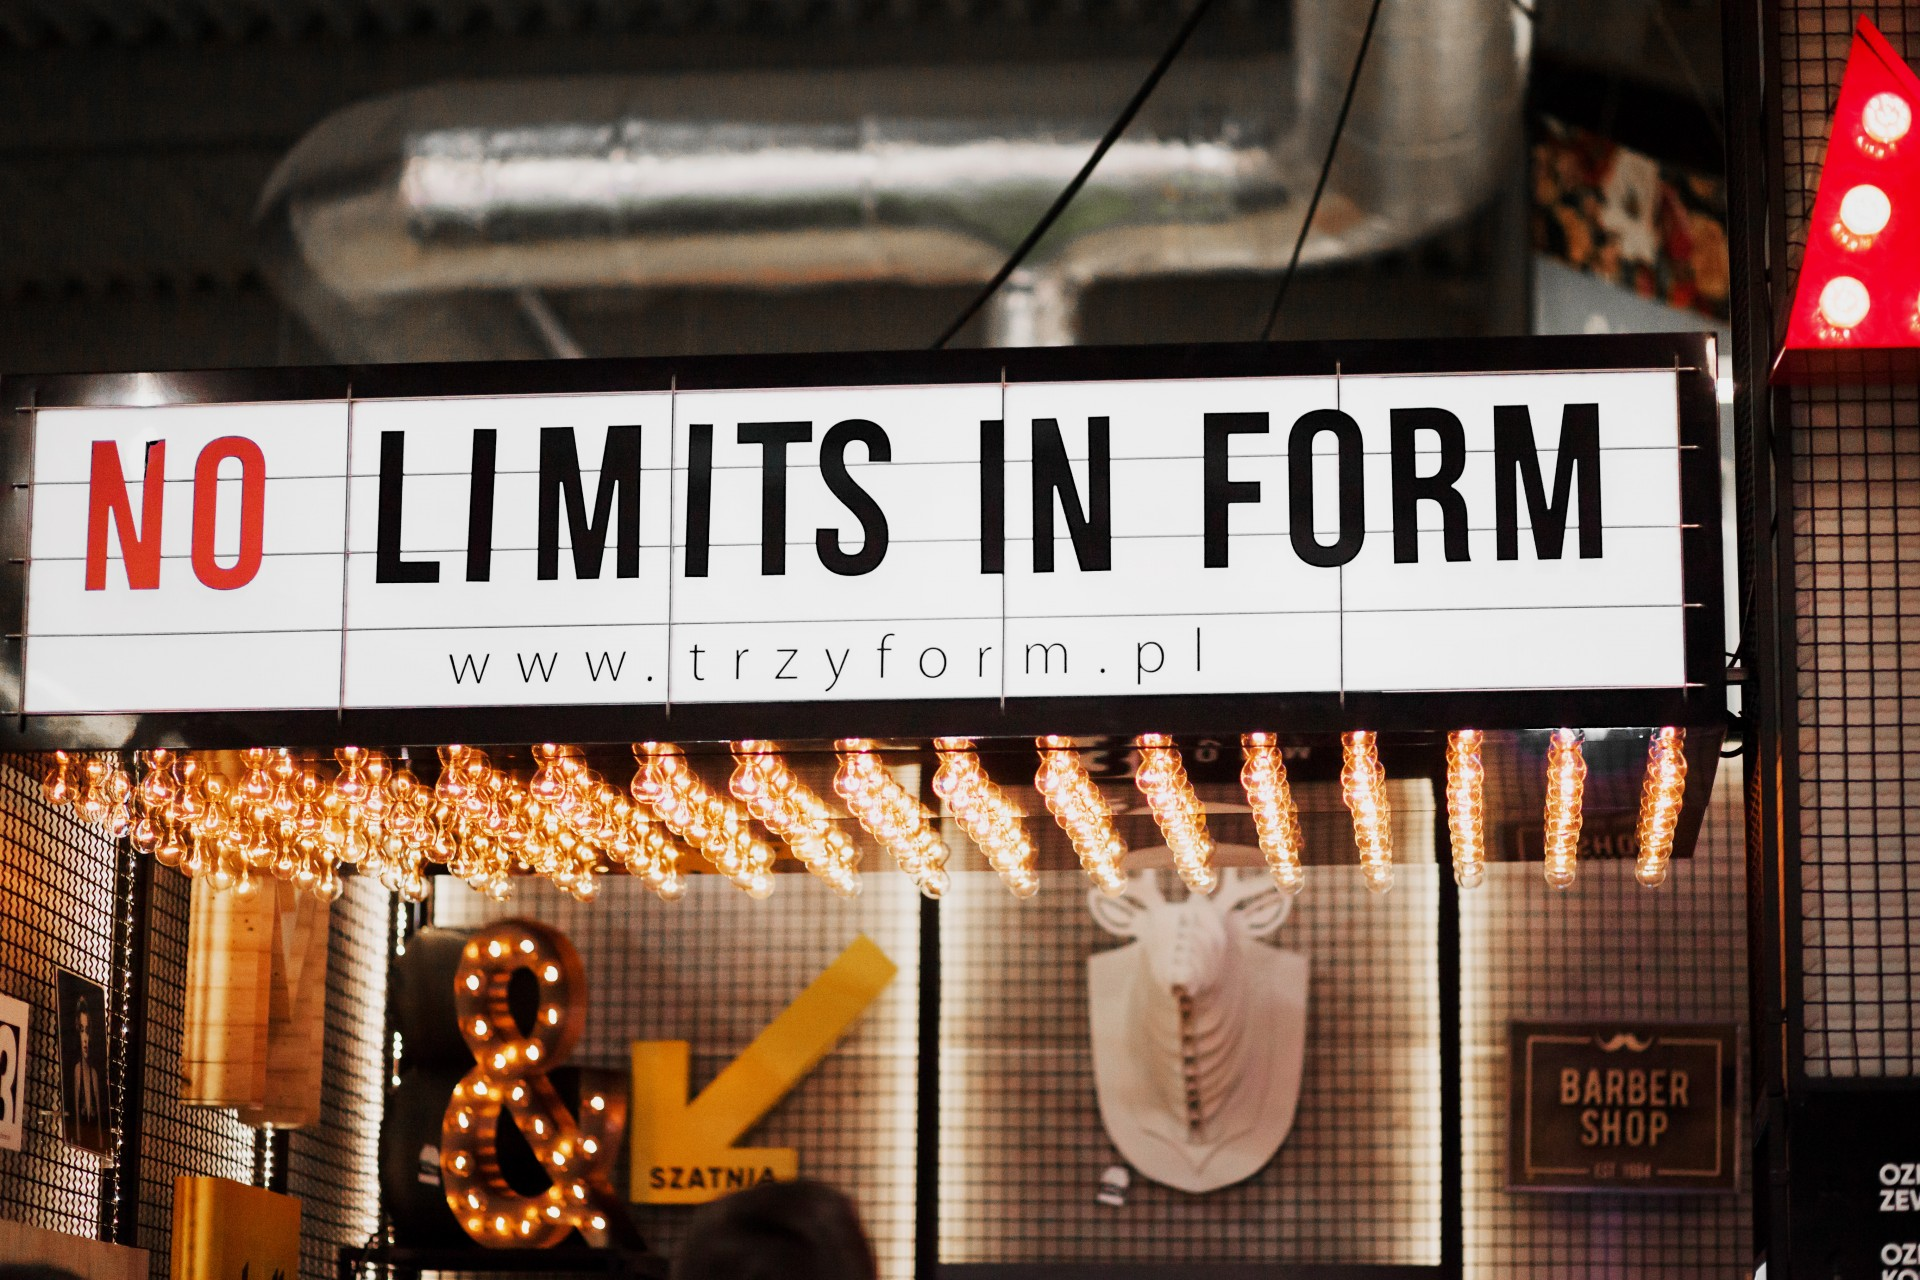 NO LIMITS IN FORM